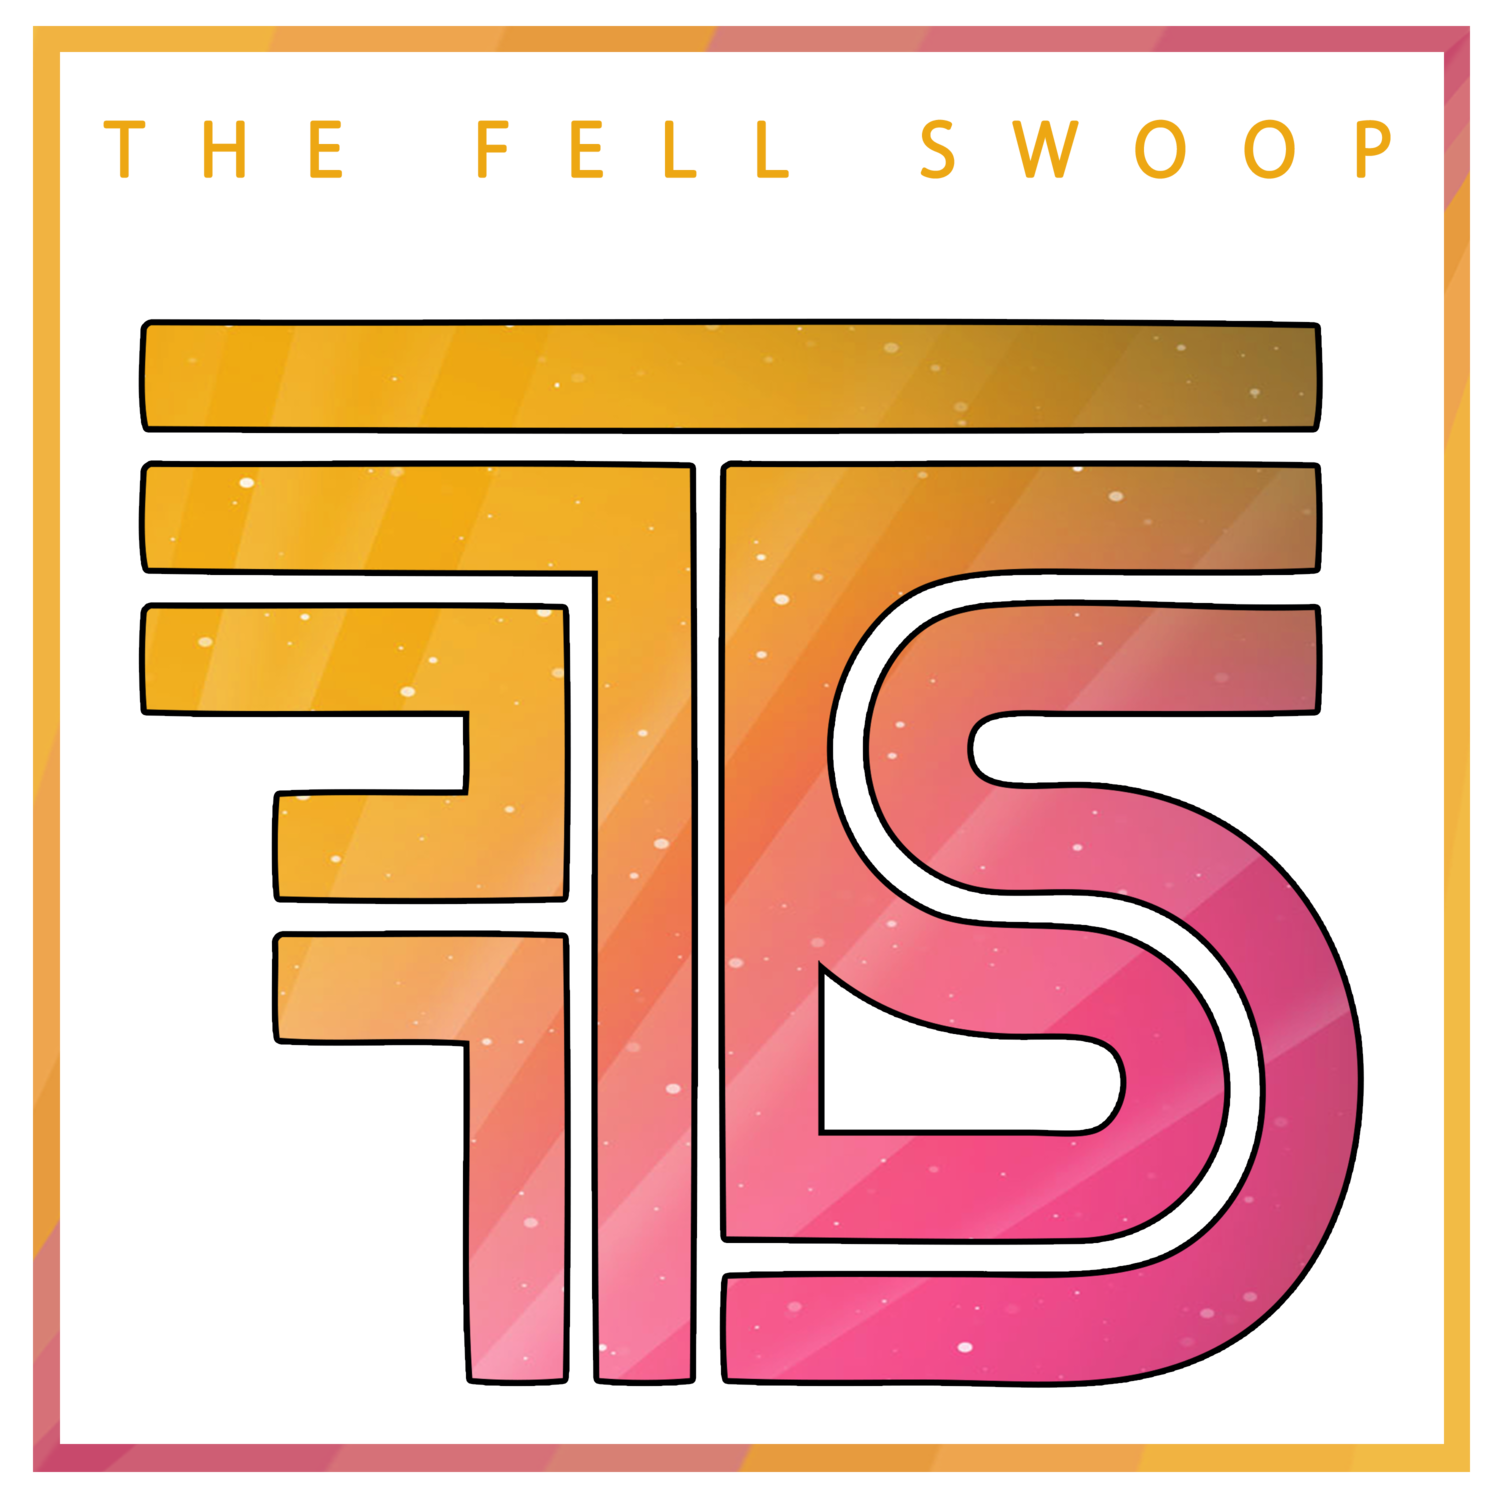 The Fell Swoop